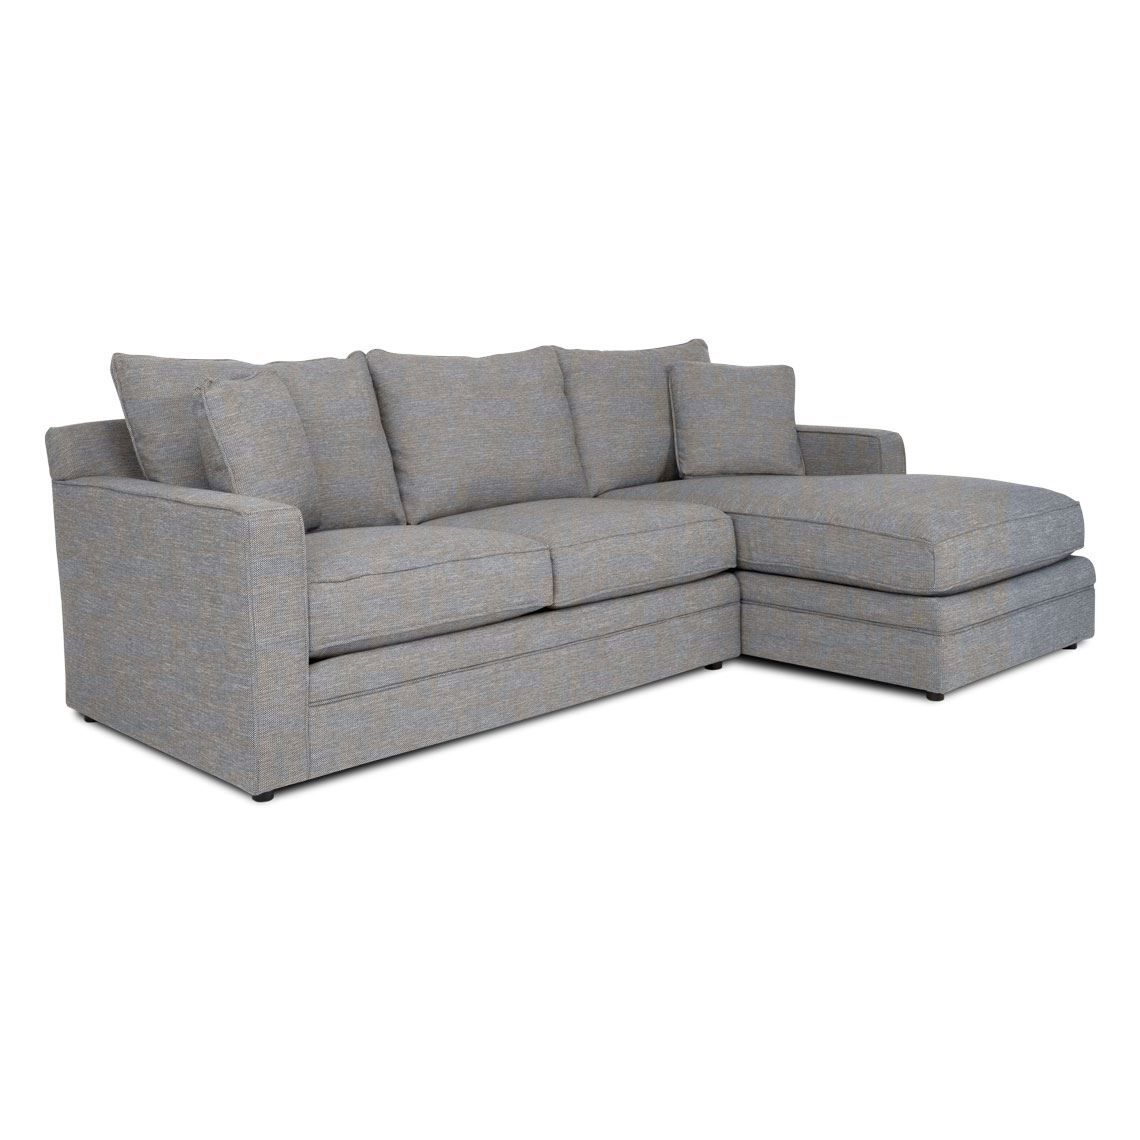 Andersen 2 5 Seat Fabric Modular With Right Chaise Modular Sofa Modular Sofa Bed Living Room Decor Furniture